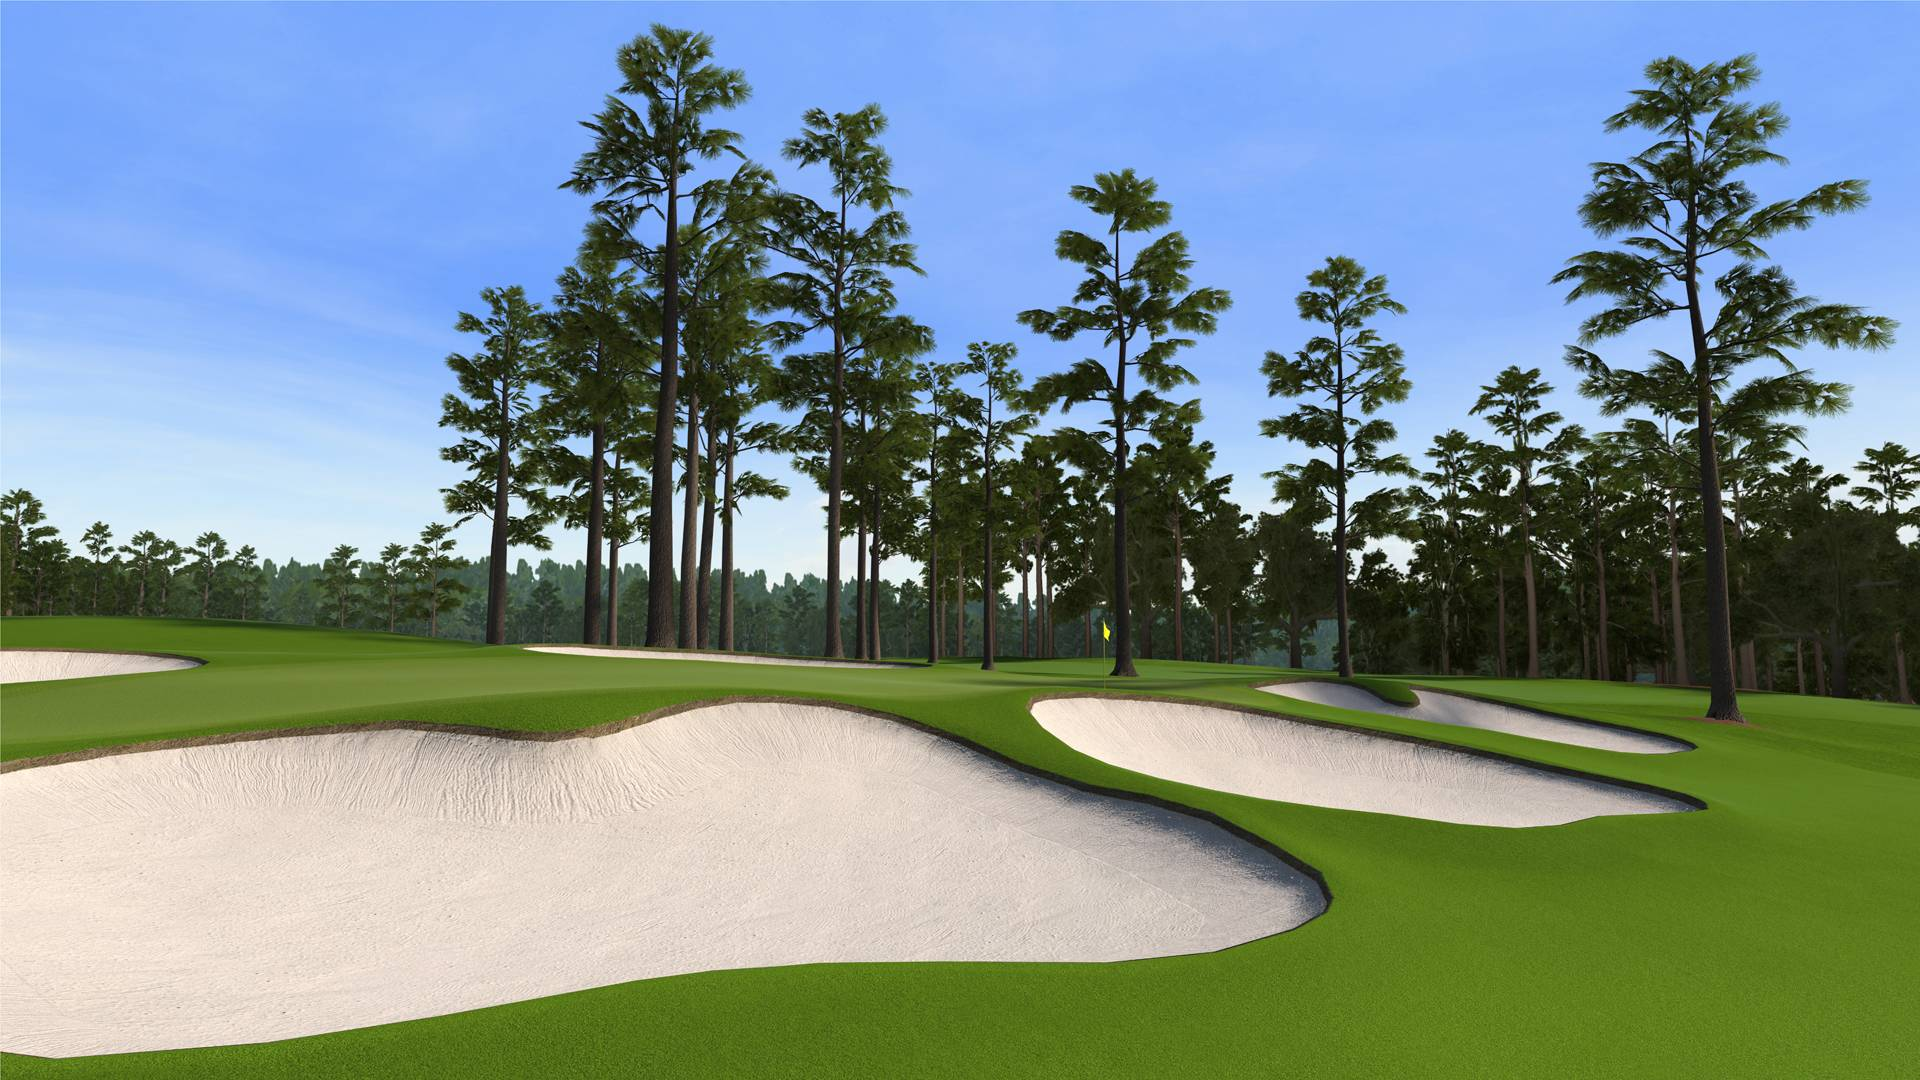 Best 11 Augusta National Wallpaper on HipWallpaper National 1920x1080